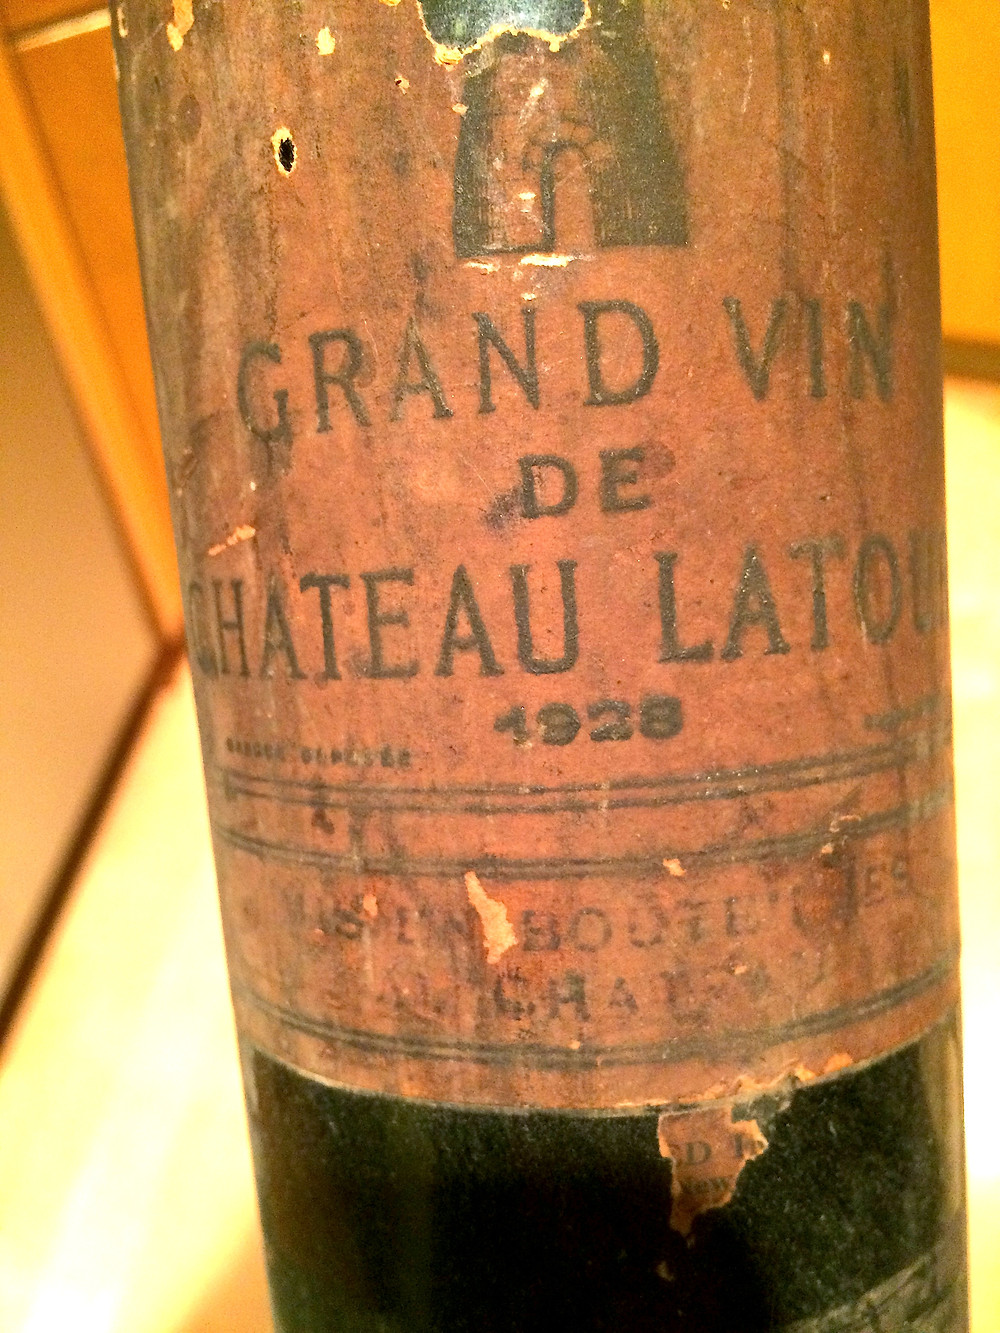 Blog pic - Chat Latour btl.jpg